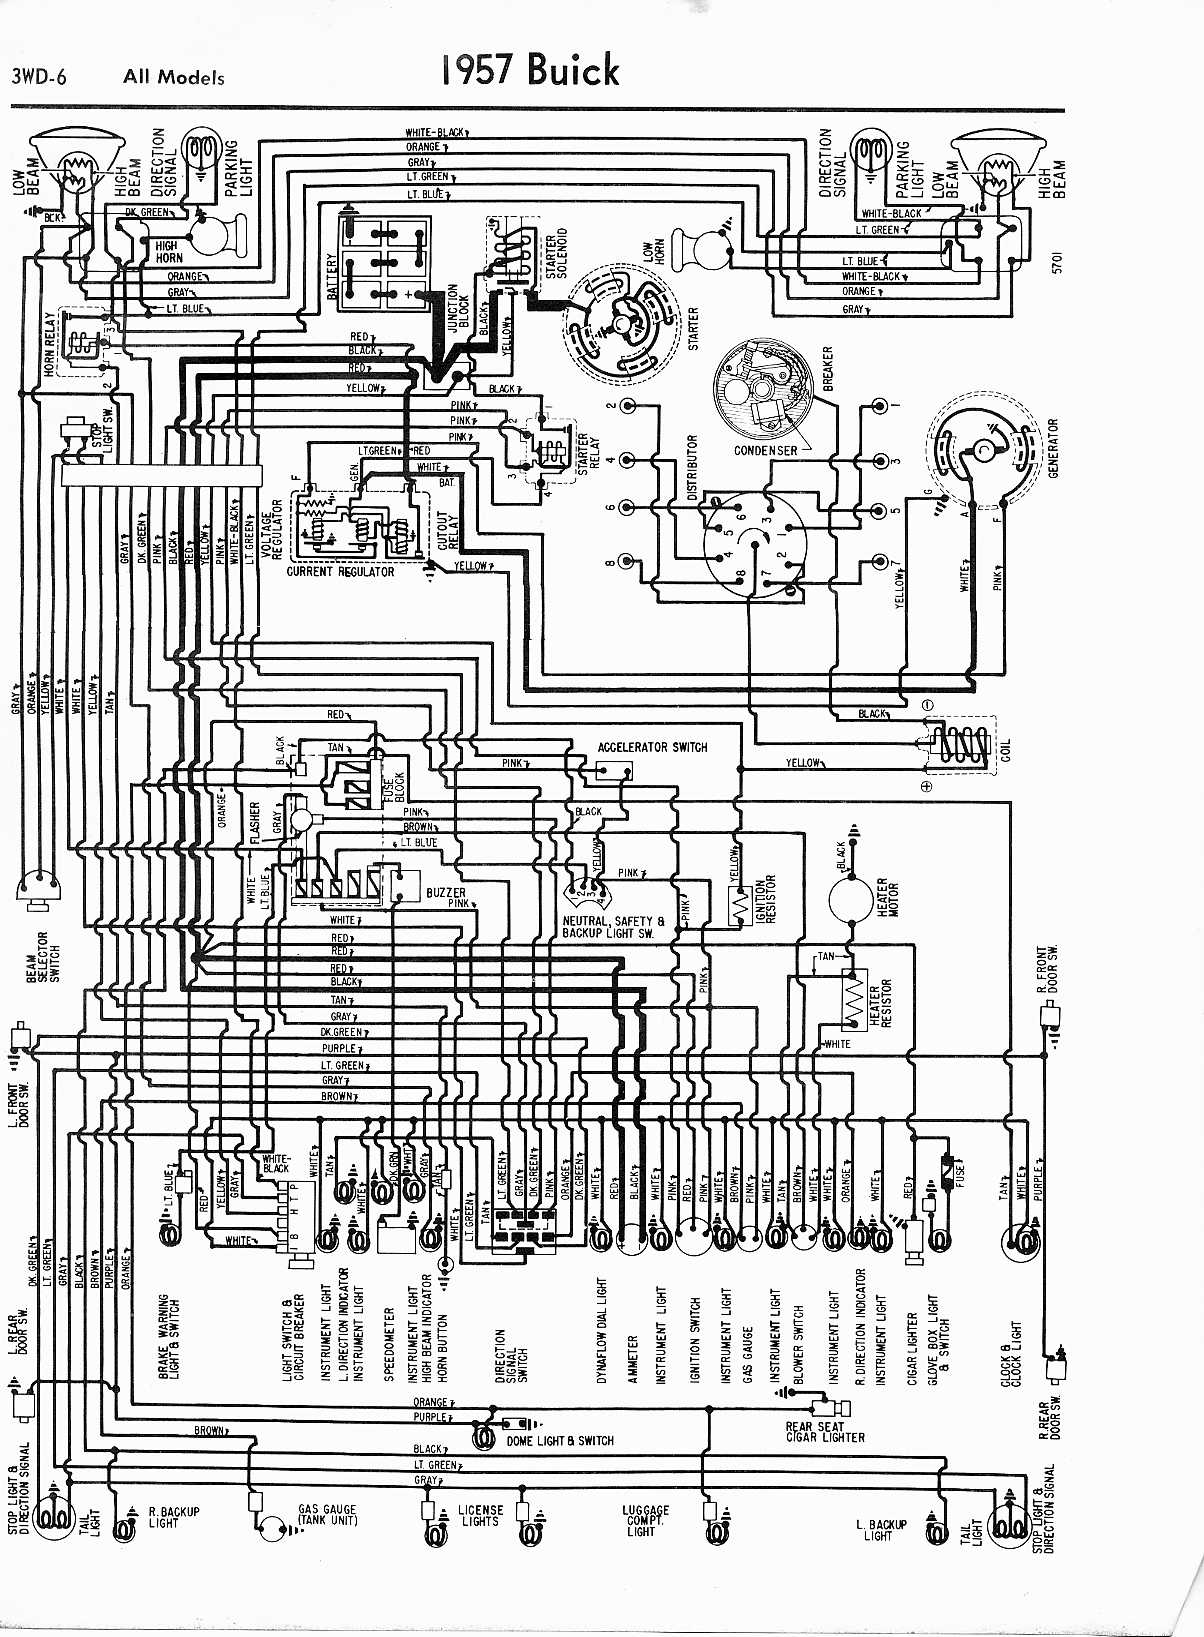 Buick Enclave Wiring Diagram - Wiring Diagram Expert on ductwork schematics, motor schematics, engine schematics, tube amp schematics, amplifier schematics, plumbing schematics, ecu schematics, transformer schematics, generator schematics, piping schematics, design schematics, computer schematics, ignition schematics, wire schematics, circuit schematics, ford diagrams schematics, engineering schematics, electrical schematics, electronics schematics, transmission schematics,